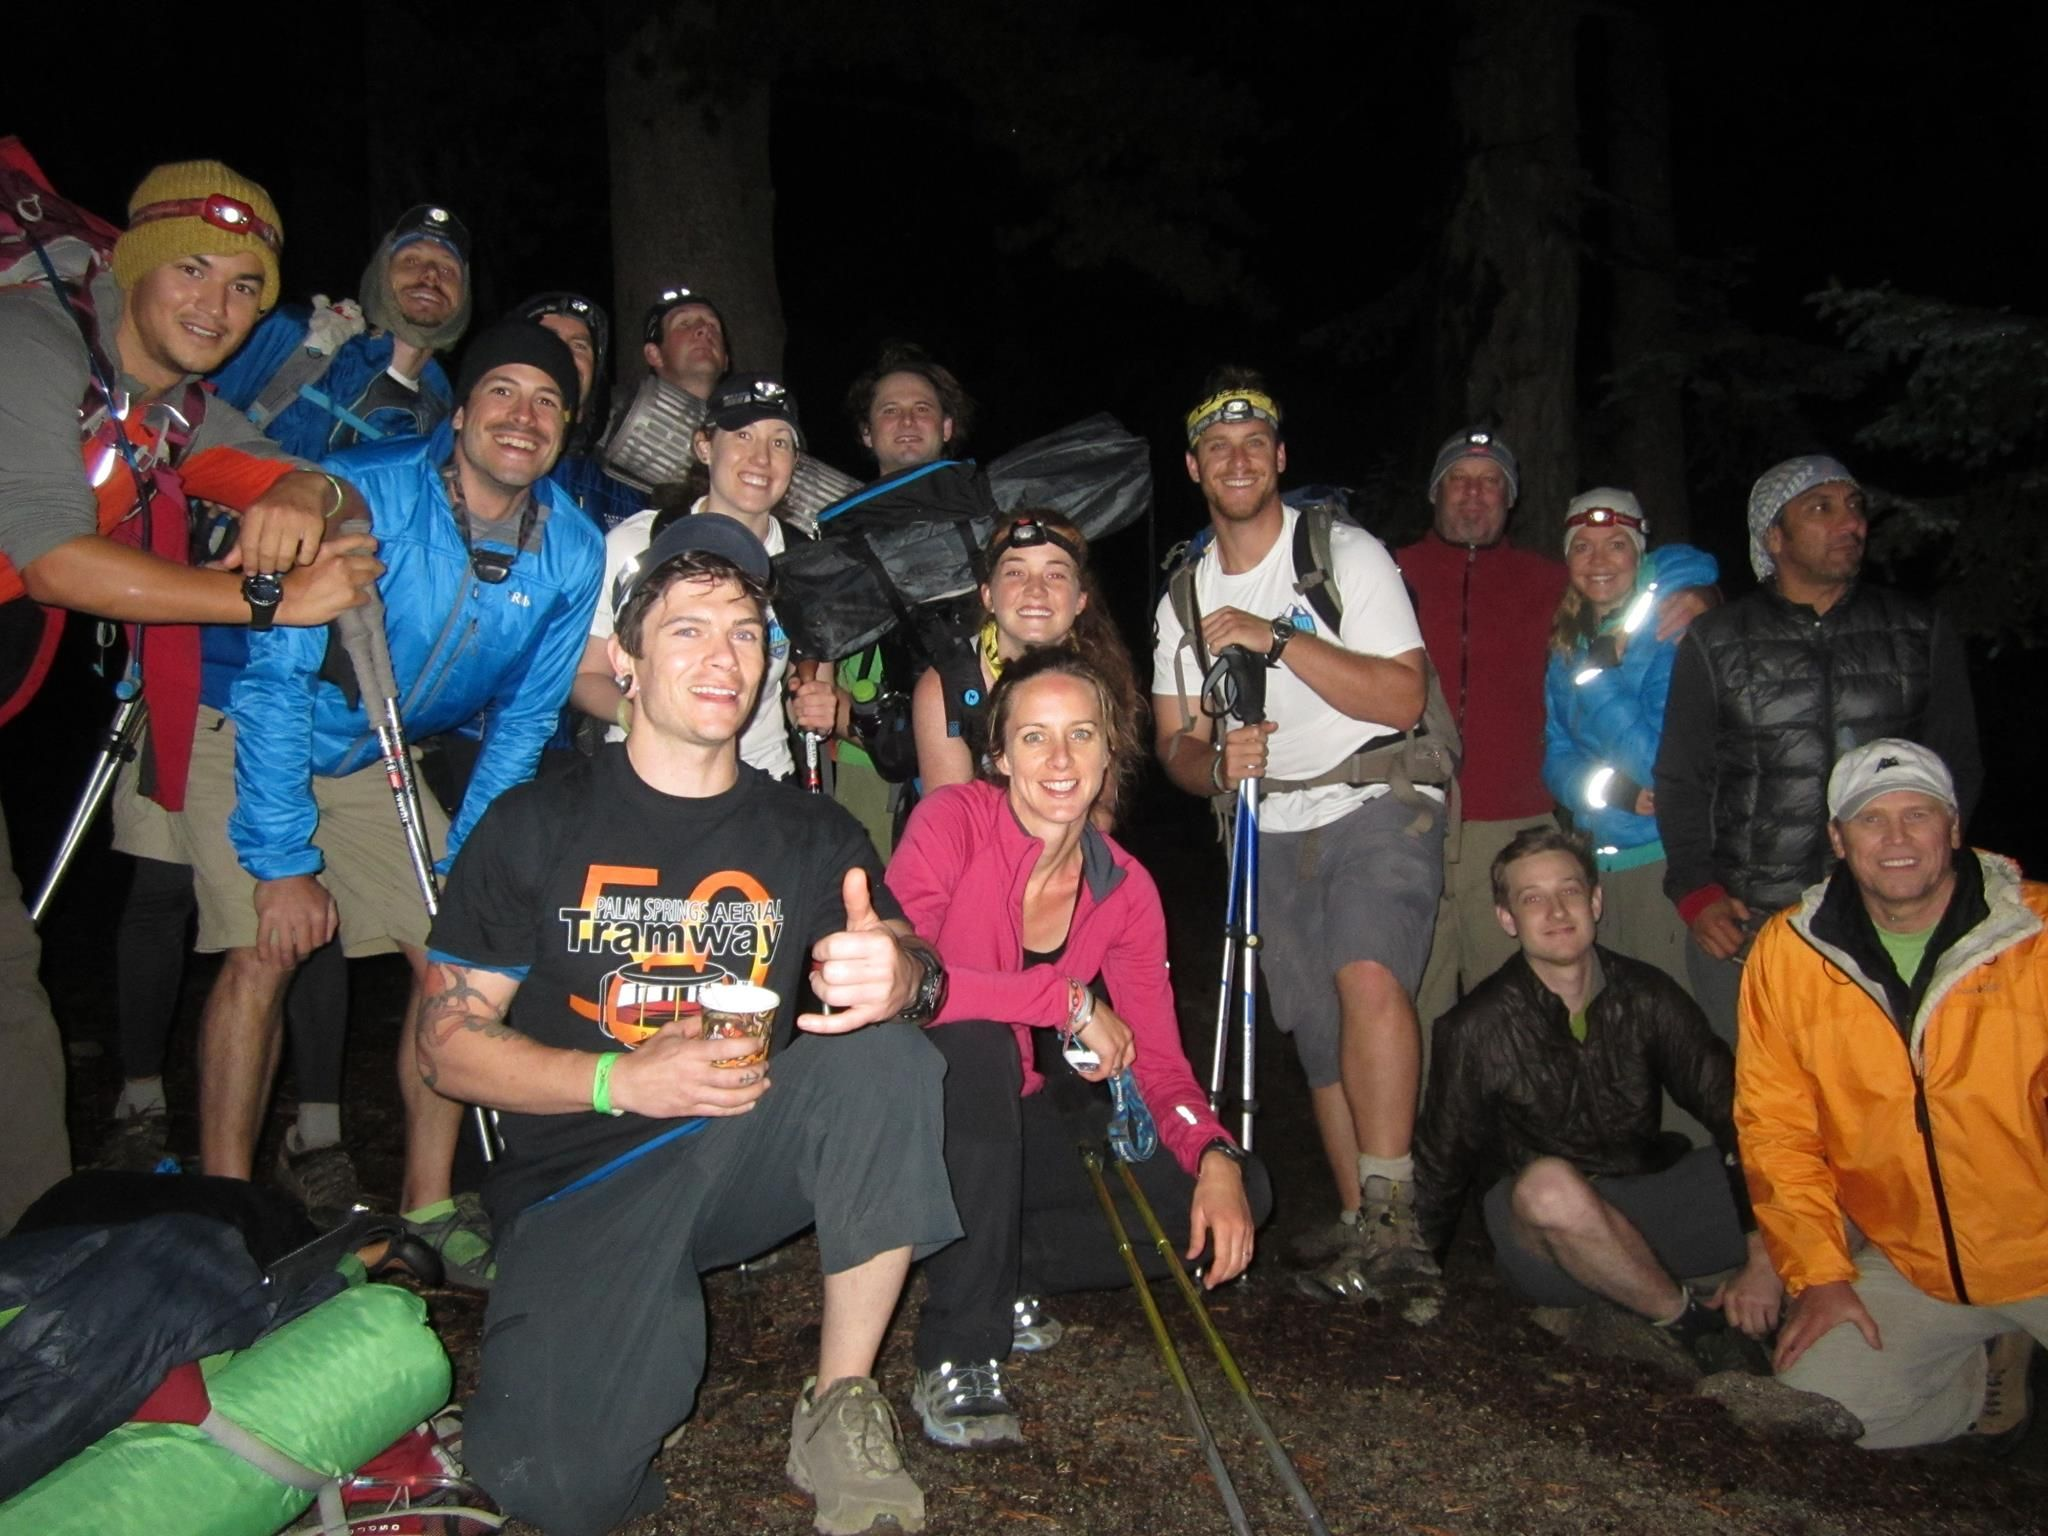 Taken on mountain number 3 after surviving electrical storms and flash floods, here's a photo of the A16 8000m Challenge Team 2013! Thanks to event sponsors JanSport , Patagonia, Suunto – Est. 1936, LOWA Boots. And to Big City Mountaineers for being the great charitable cause!